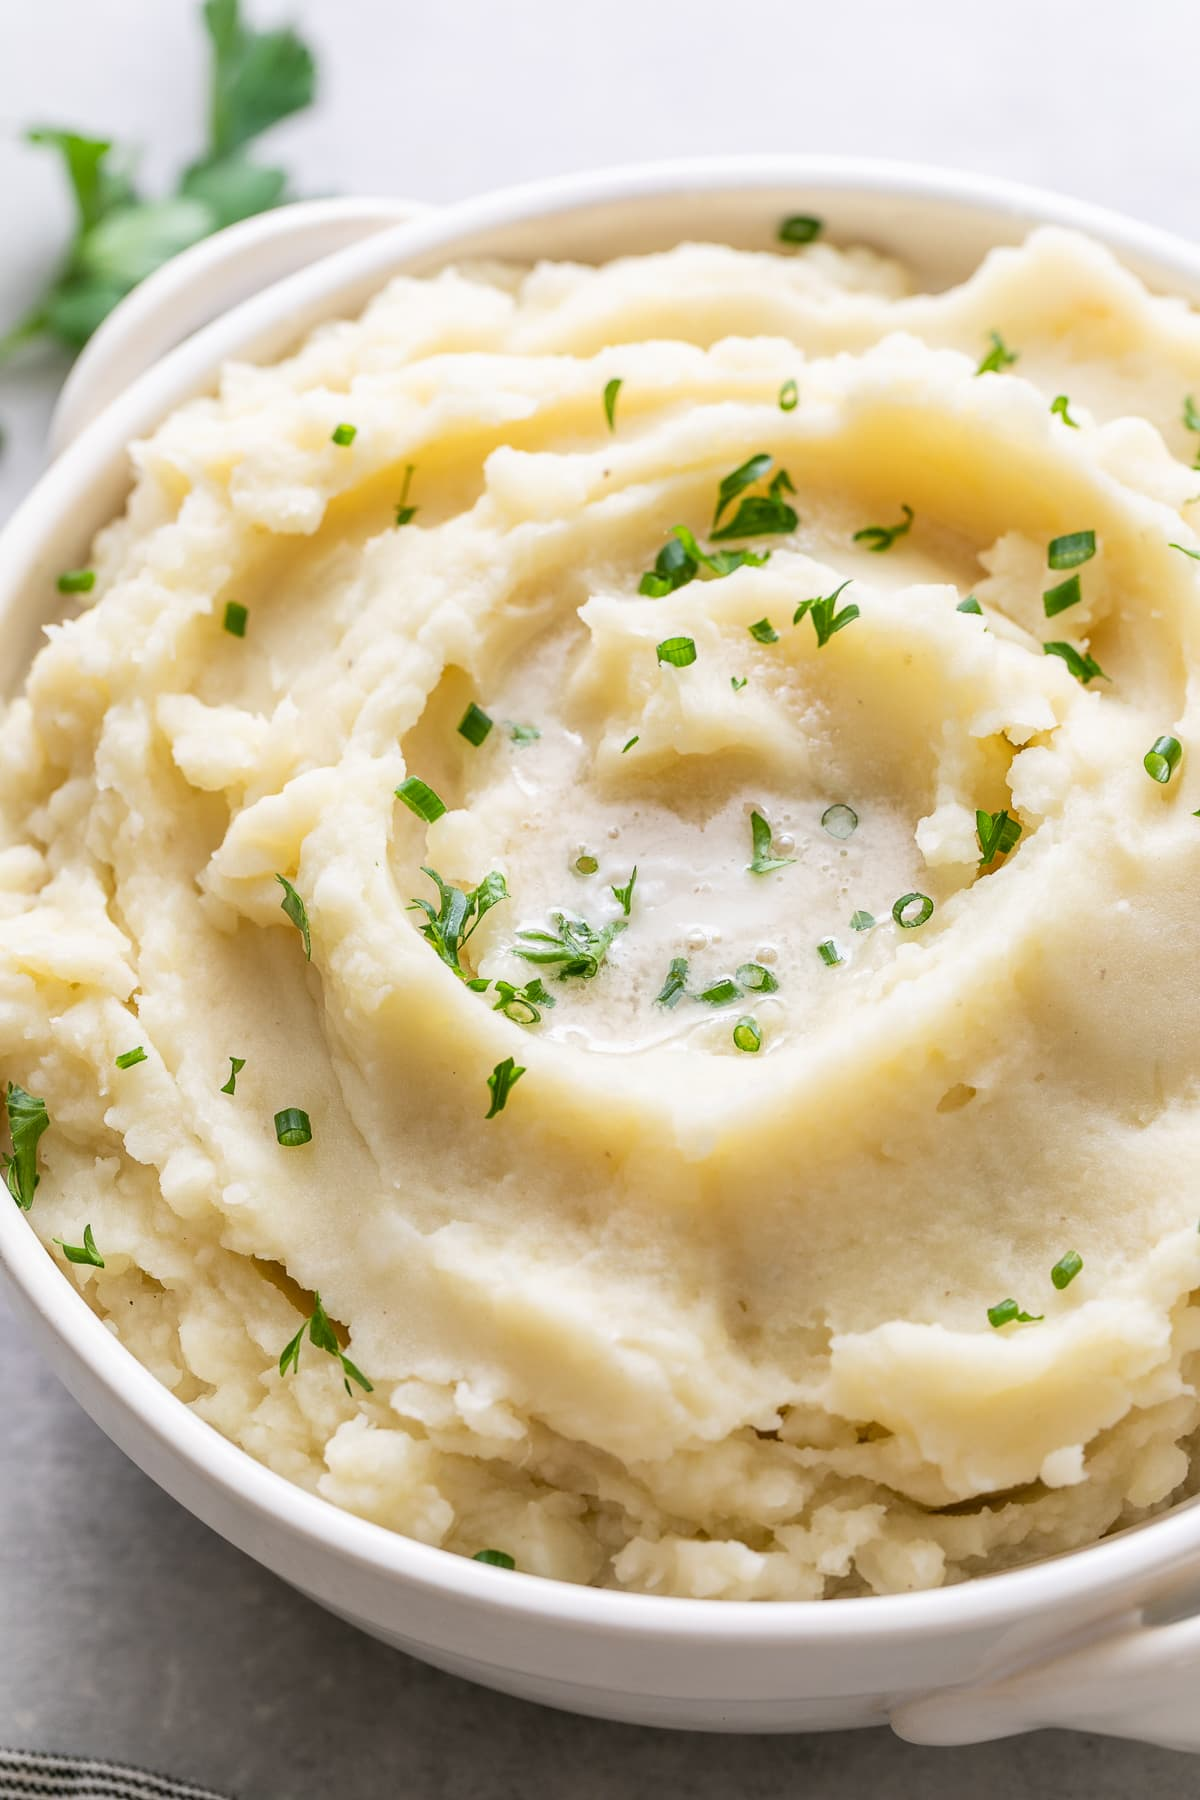 side angle view of vegan mashed potatoes in a serving bowl.